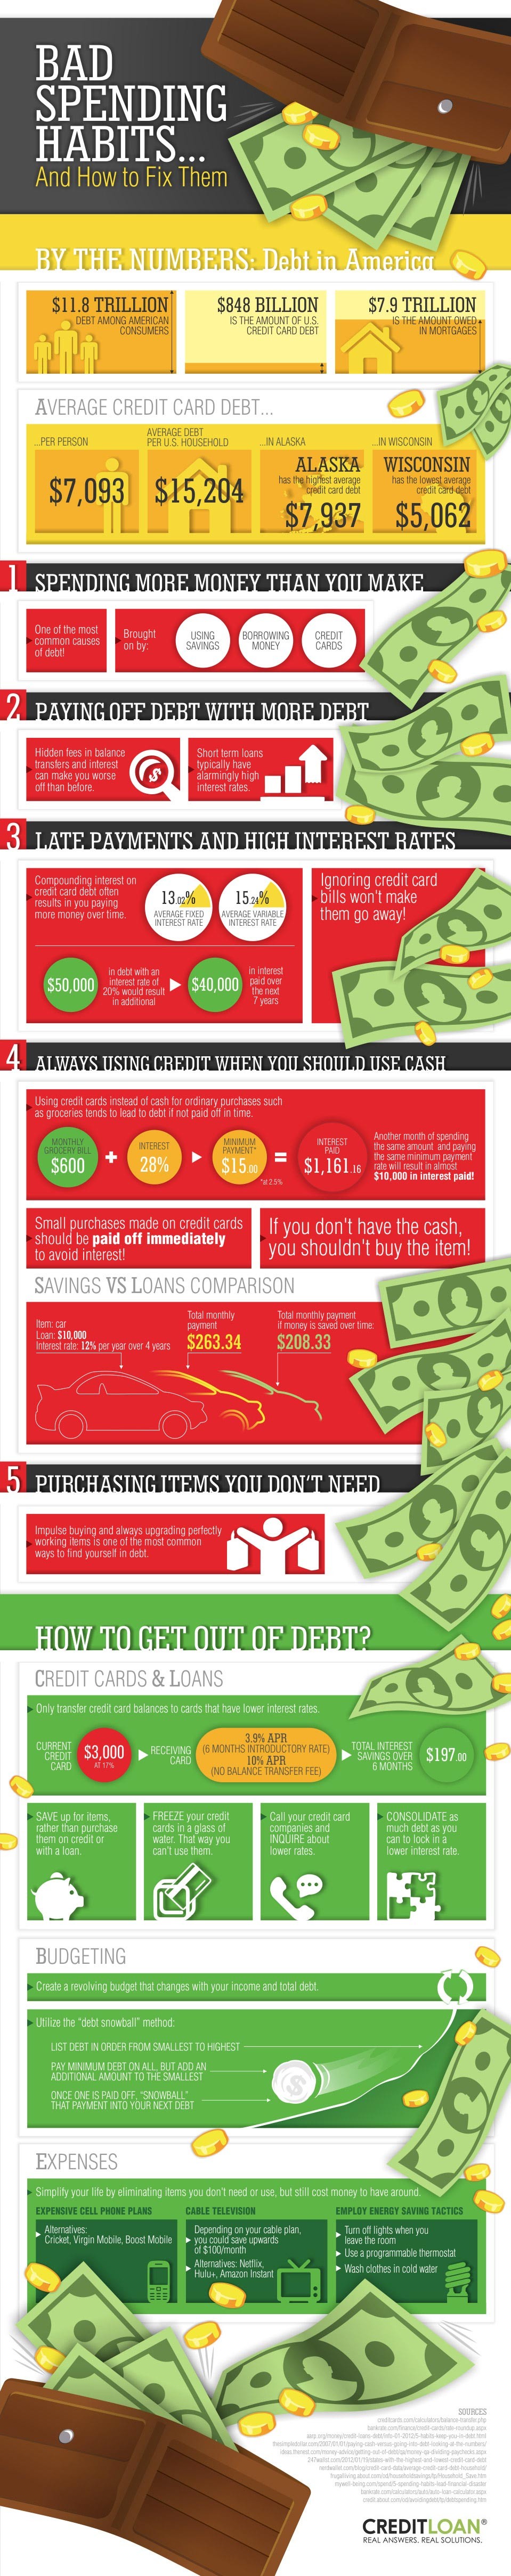 Bad Spending Habits Financial Infographic